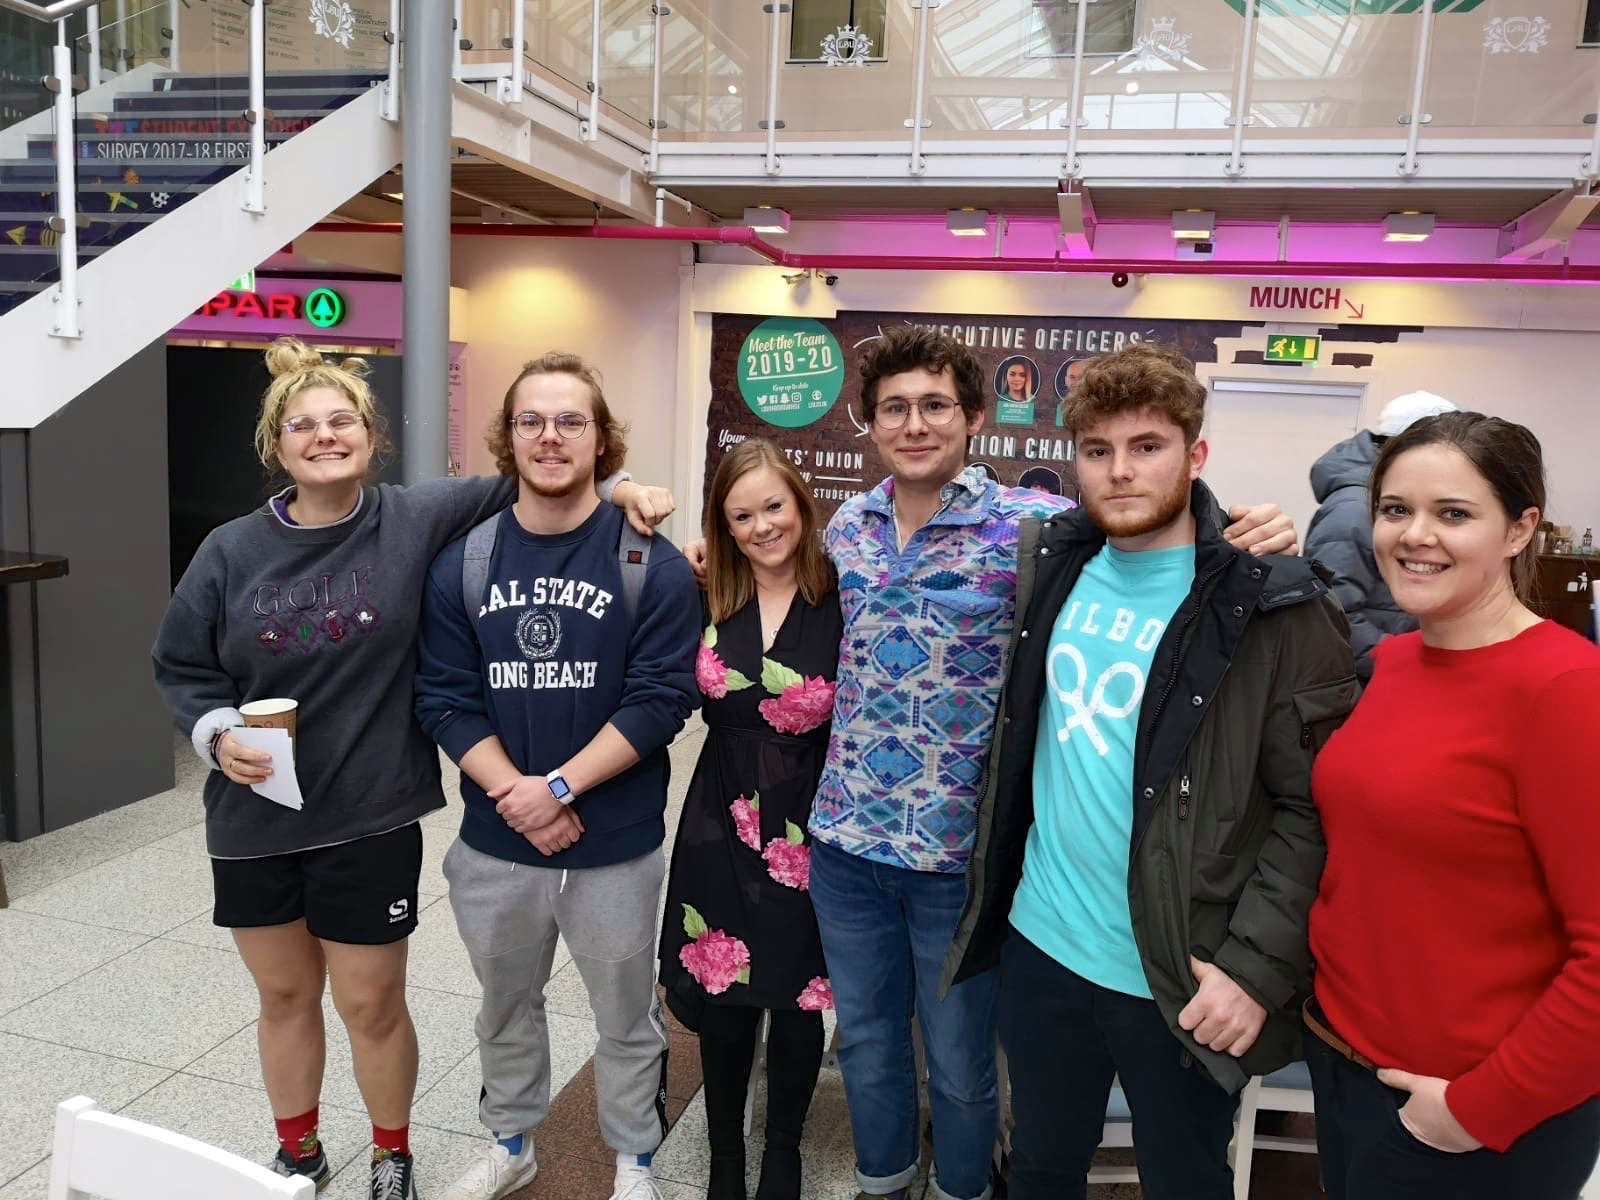 Hillians at Loughborough - a visit from KHS 5th Form